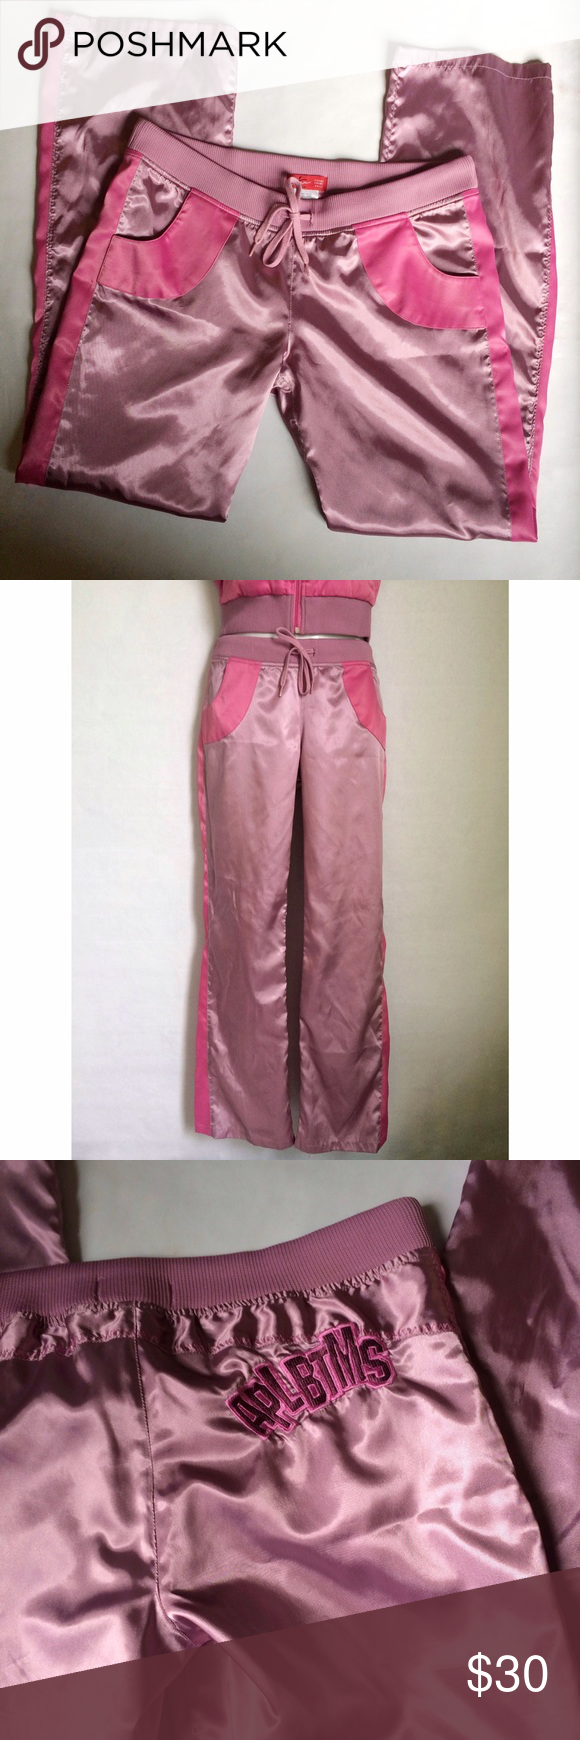 ✨NEW Listing✨Apple Bottoms satin pants Apple Bottoms satin track pants in lavender with pink trim on sides and curved trim on pockets. Drawstring waist with APLBTMS appliqué on back. Lined to thigh. Size L. 97% polyester/3% spandex. Matching jacket (size M) available in a separate listing. Not interested in trades. Apple Bottoms Pants Track Pants & Joggers